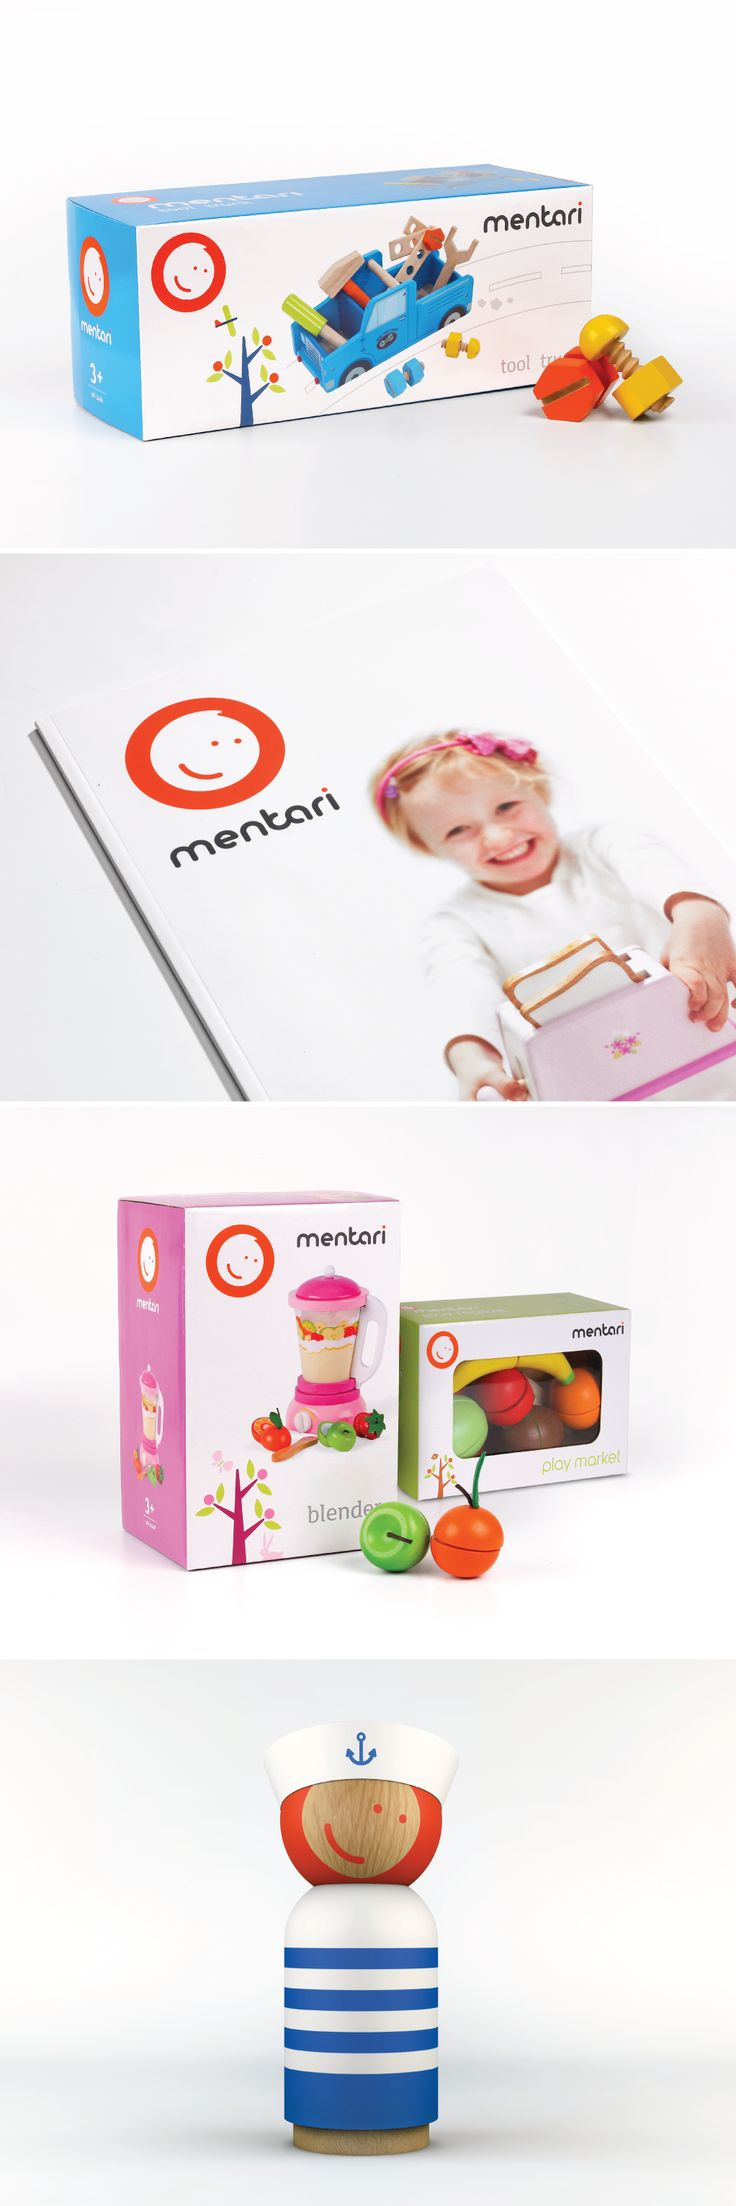 15 best toy packaging images on Pinterest | Box, Character design ...